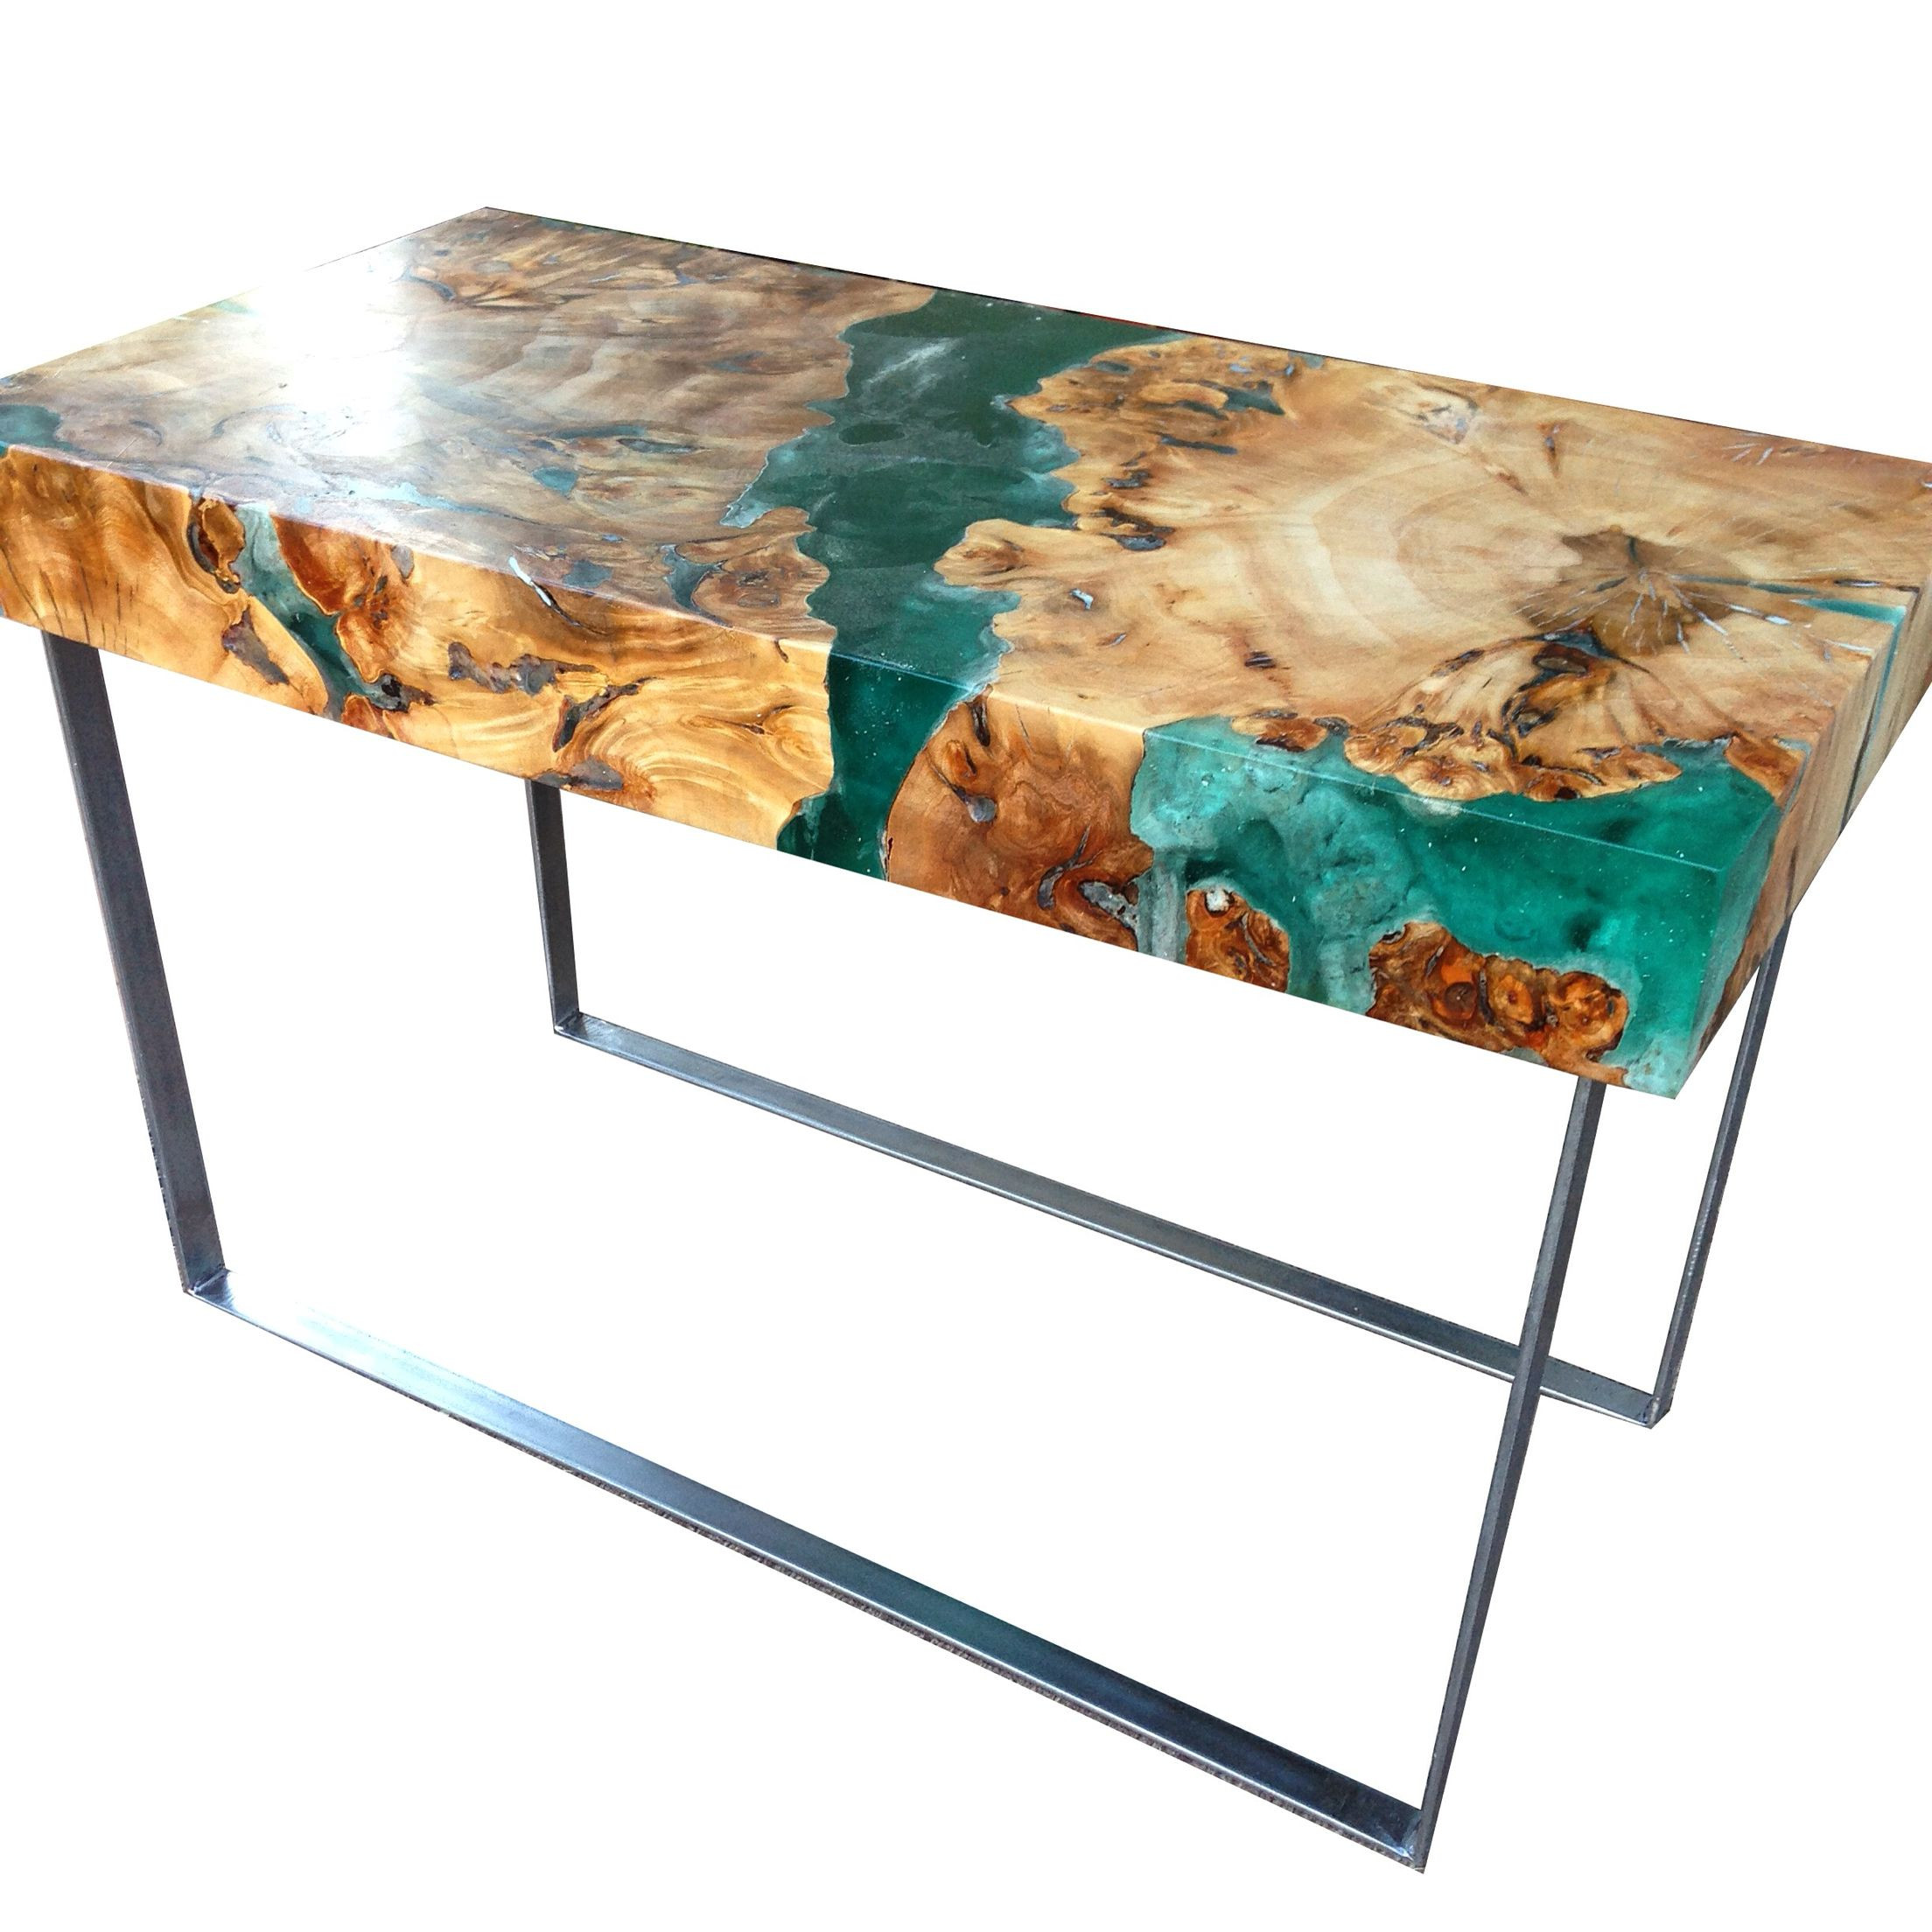 Best ideas about Resin Coffee Table . Save or Pin Resin and wood coffee table welded steel legs Now.